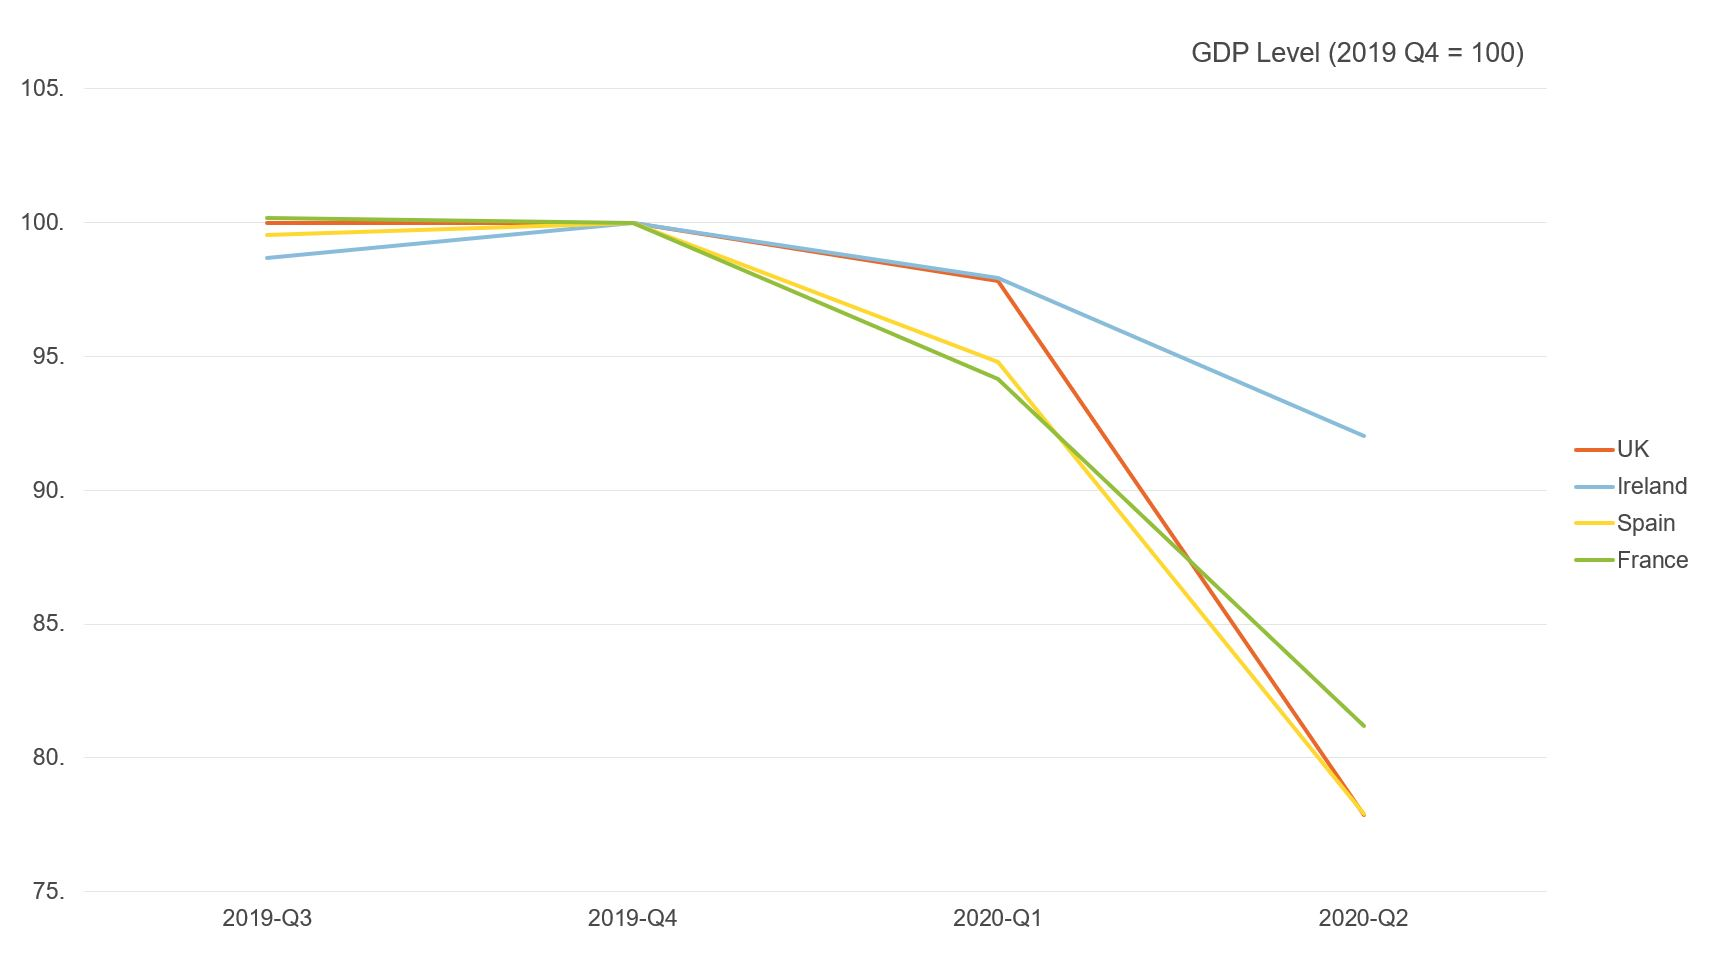 Figure comparing the level of GDP across the UK, Ireland, Spain & France